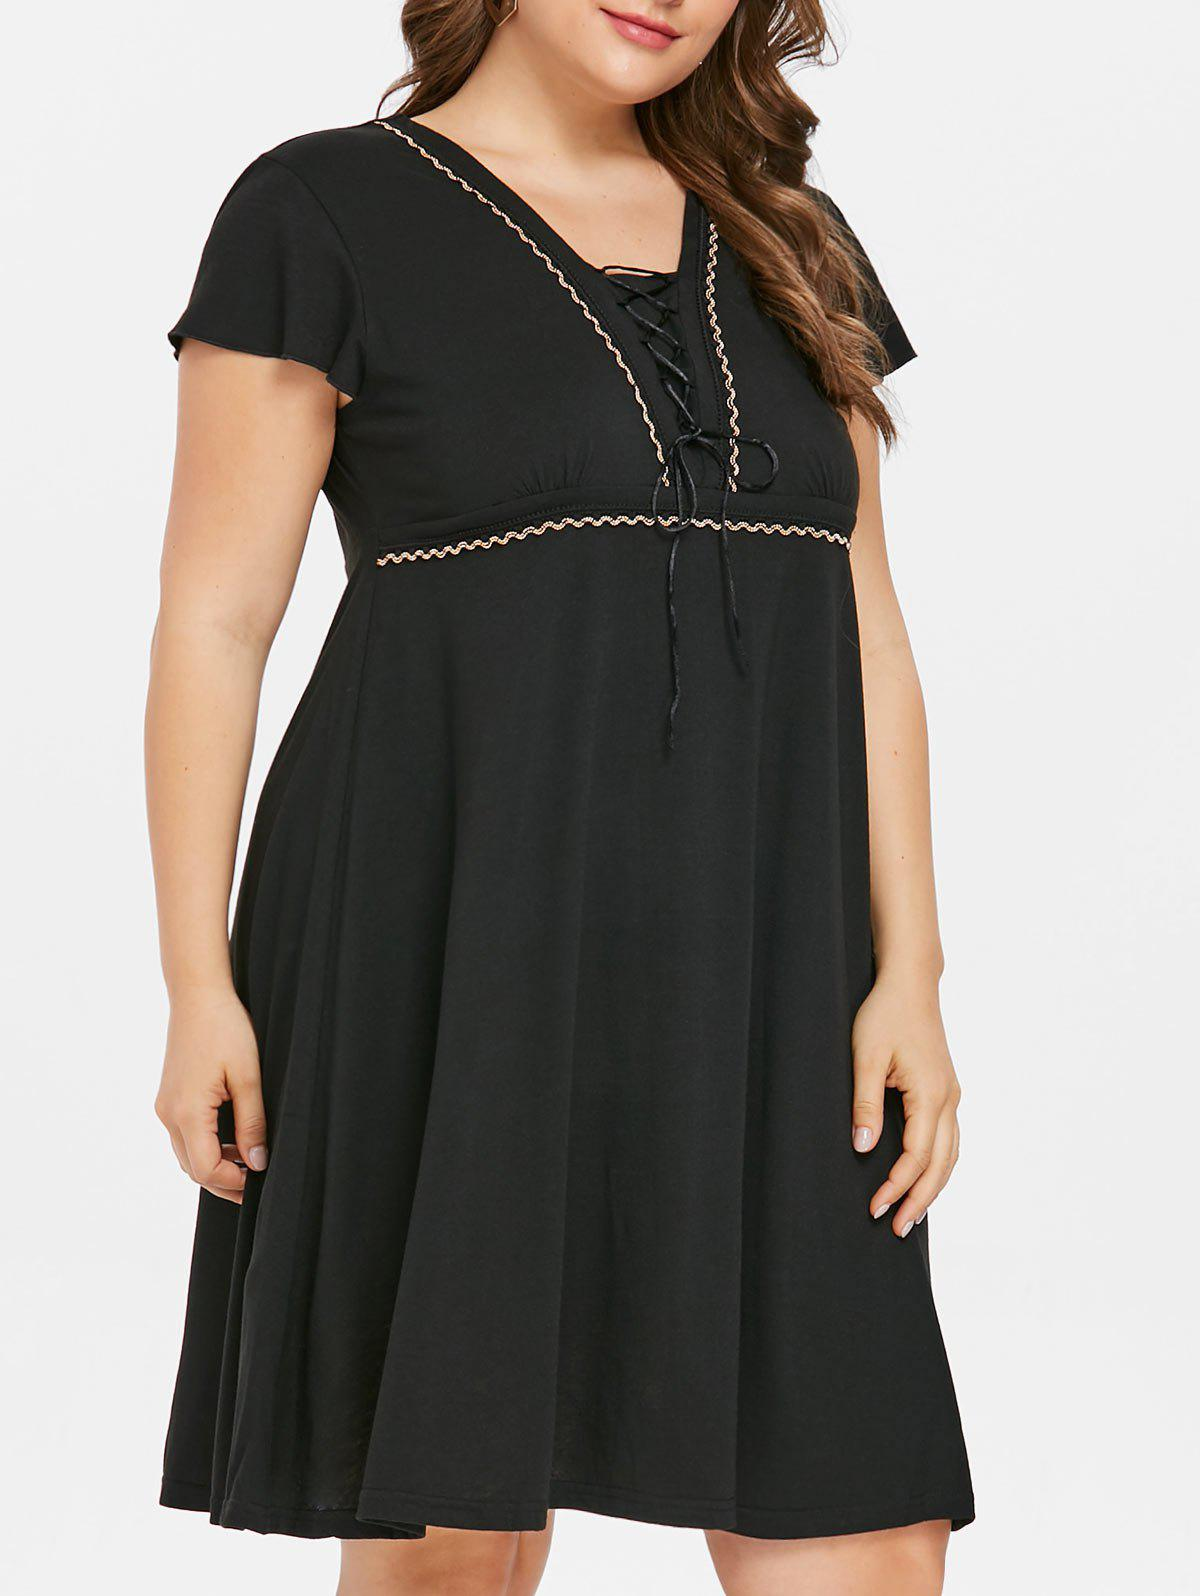 Hot Lace Up Plus Size Knee Length Dress